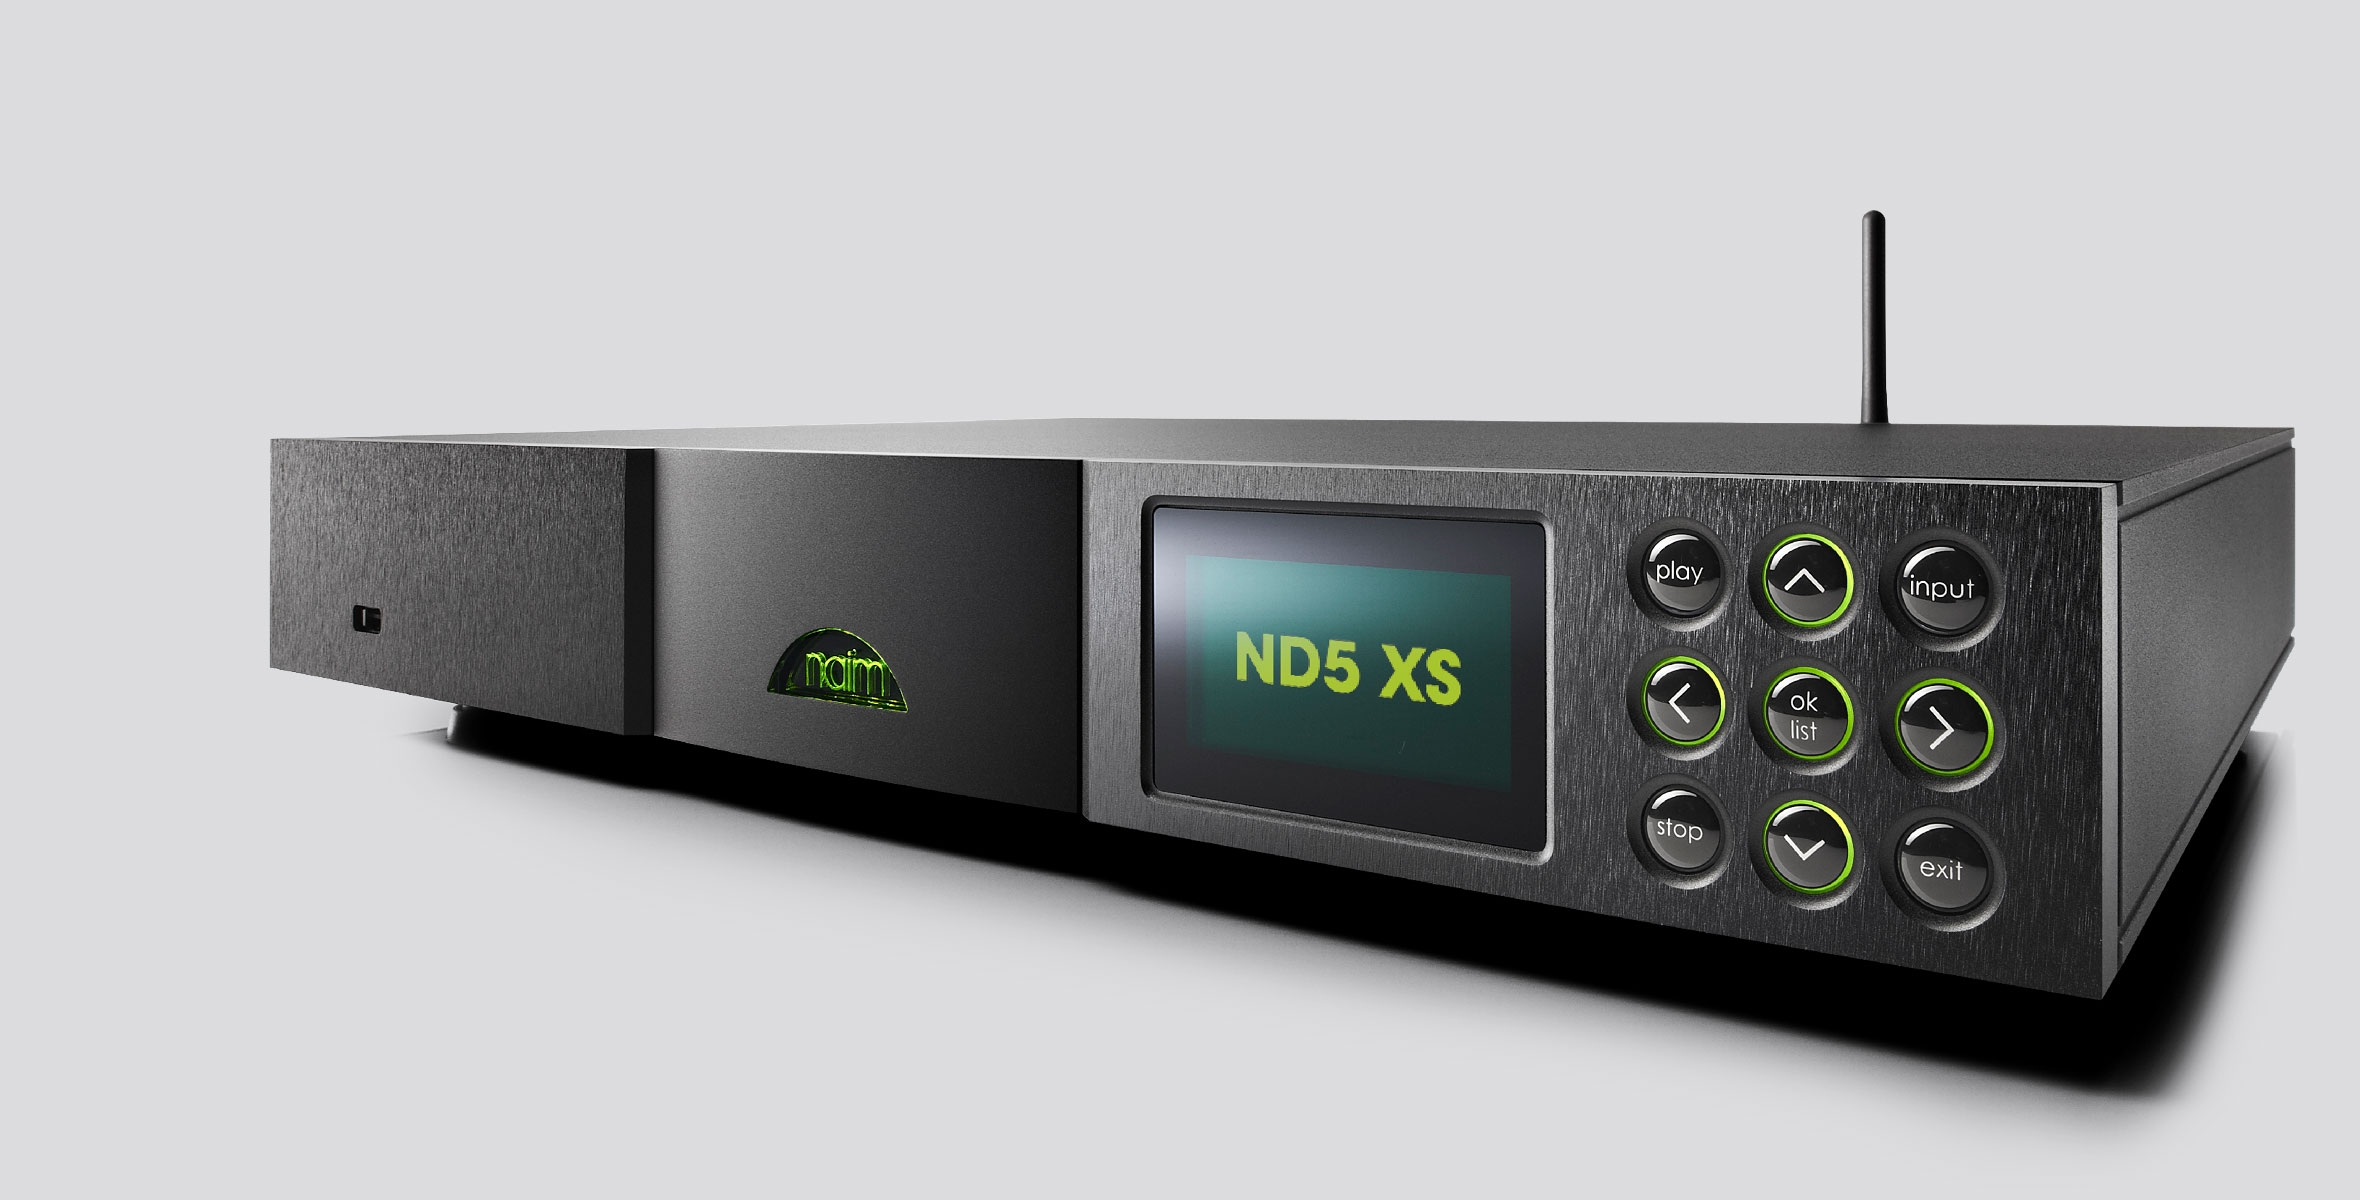 ND5 XS Network Player